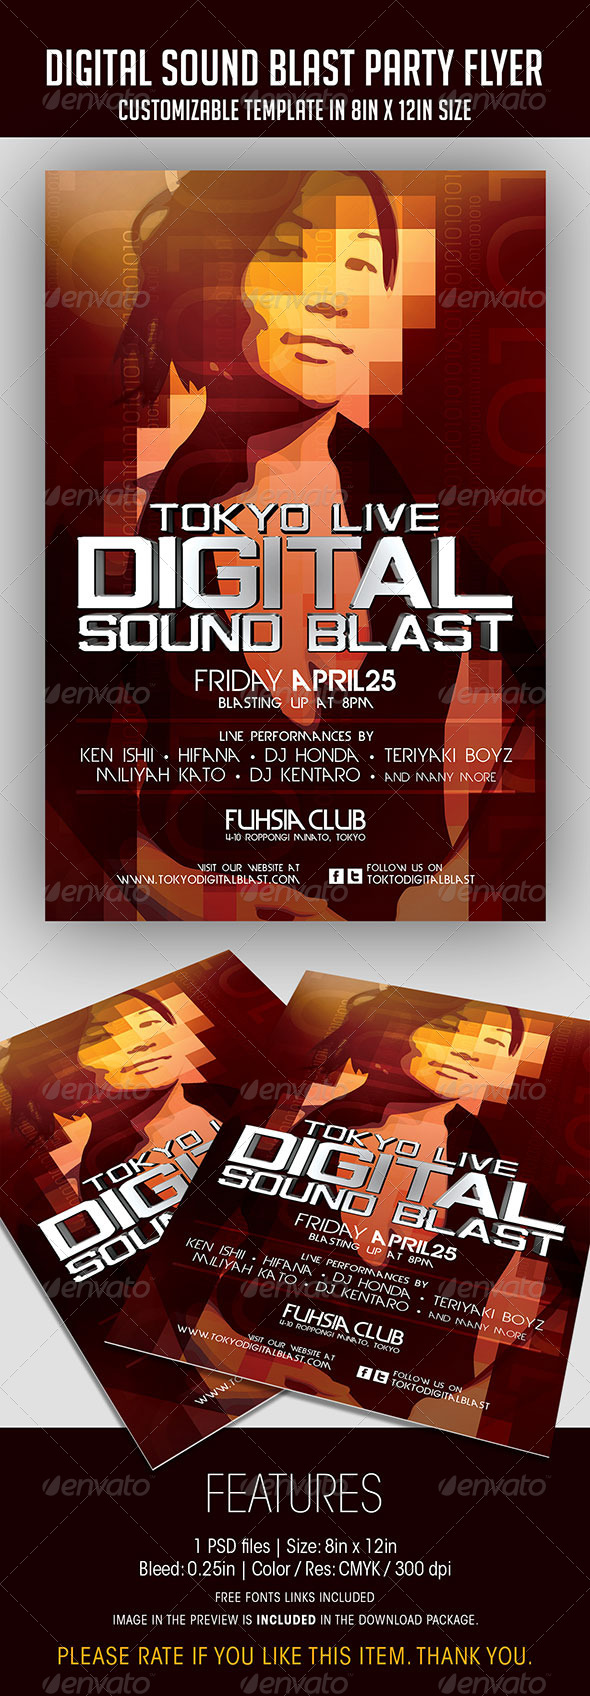 Digital Sound Blast Party Flyer - Clubs & Parties Events